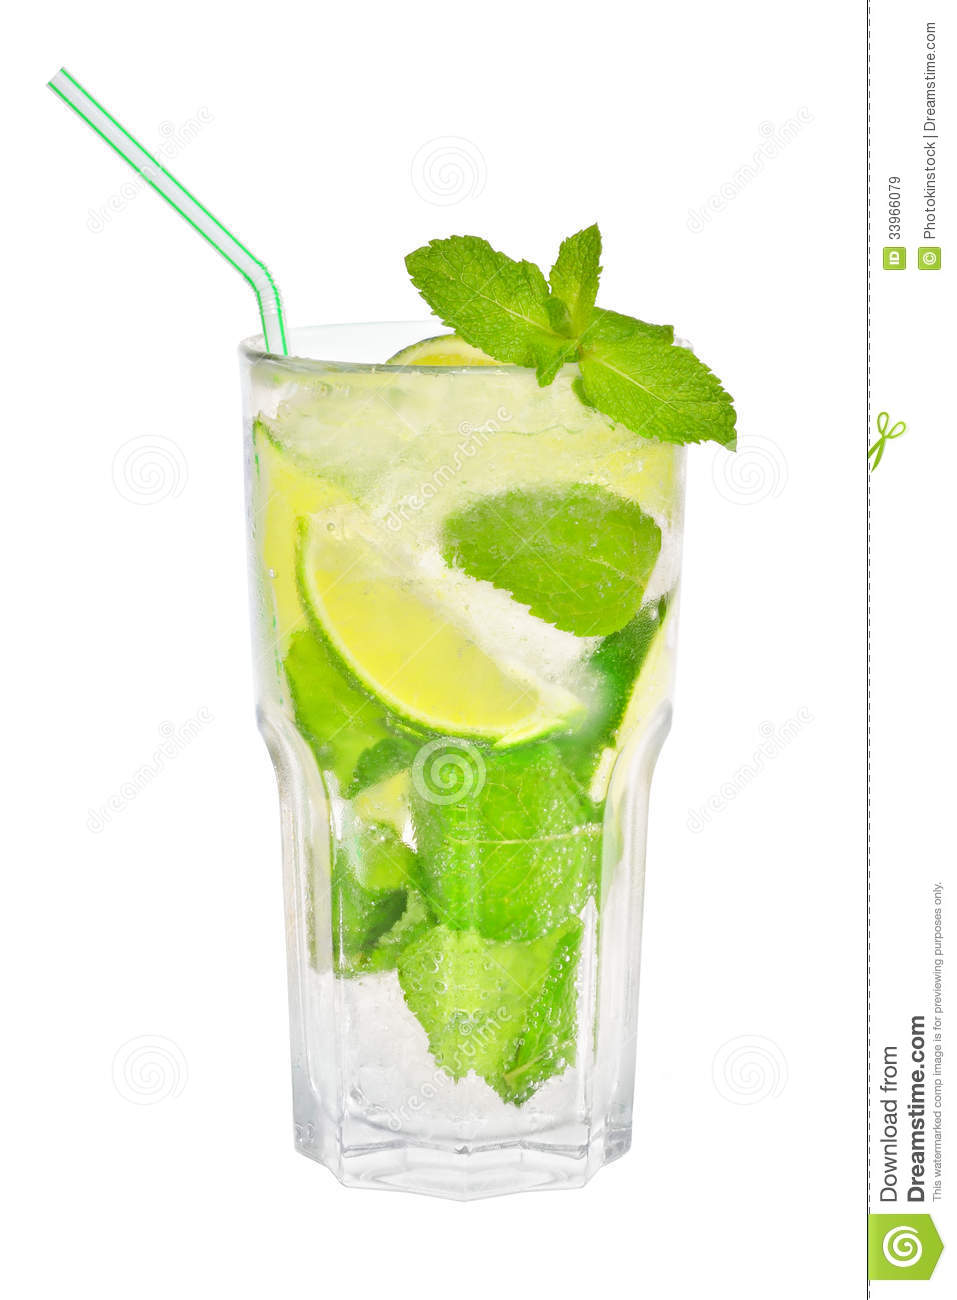 mojito cocktail in a tall glass royalty free stock images image 33966079. Black Bedroom Furniture Sets. Home Design Ideas